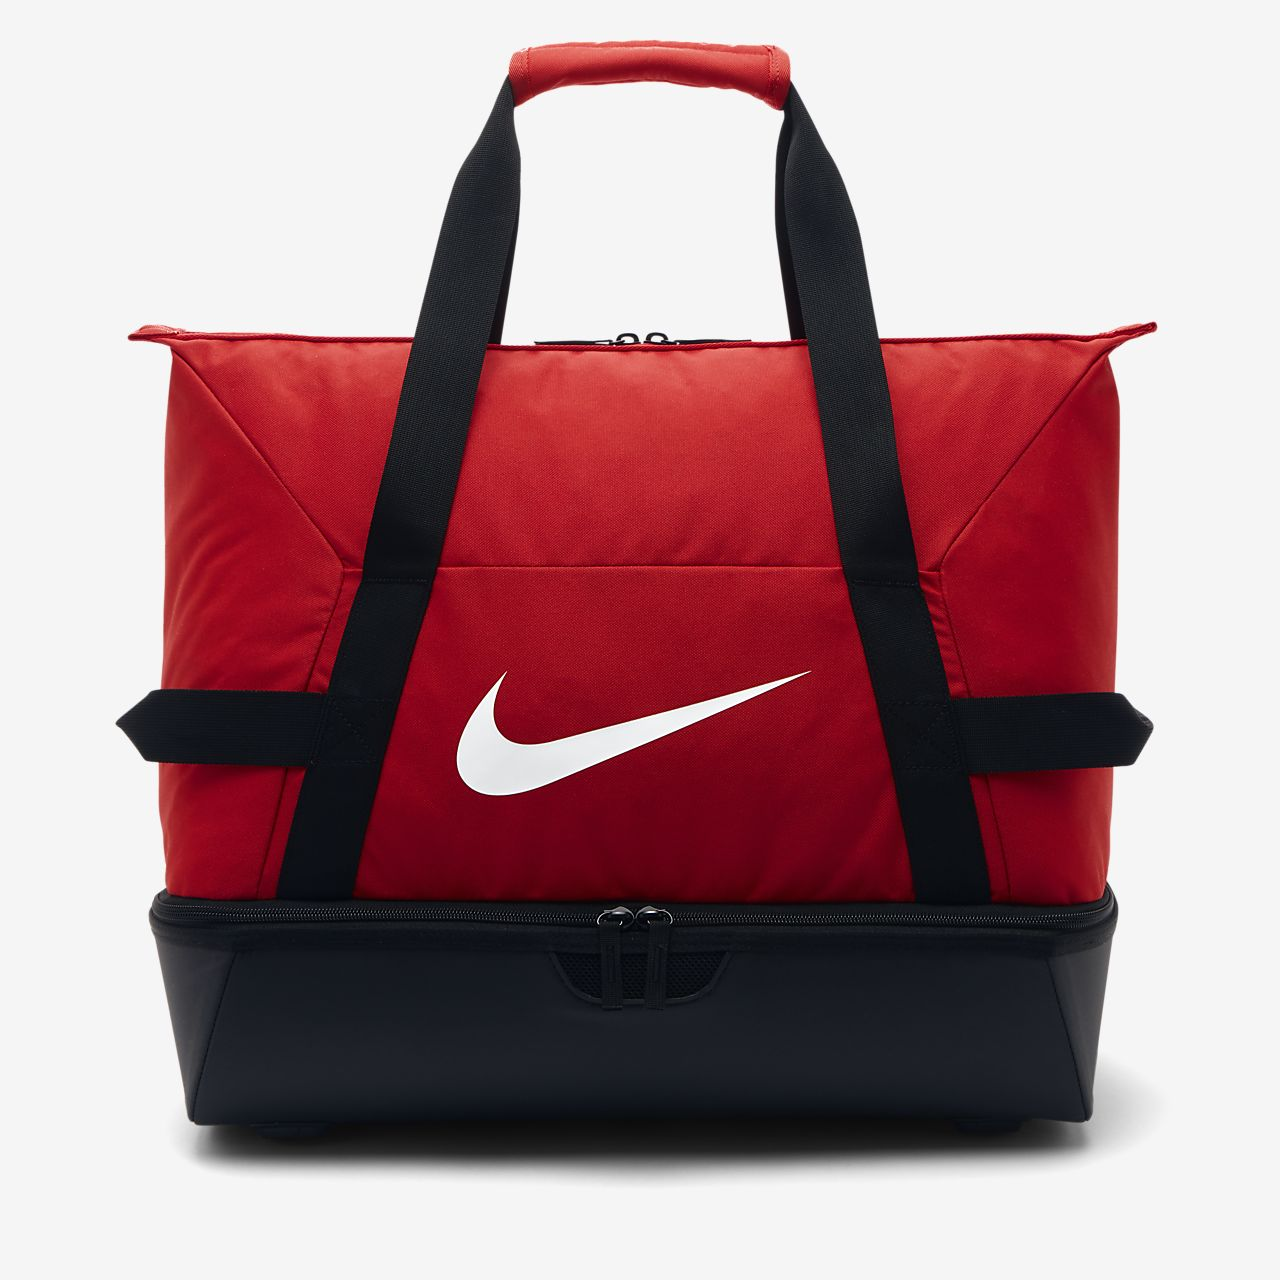 low priced 383d9 4b606 Sac de sport pour le football Nike Academy Team Hardcase (taille moyenne)